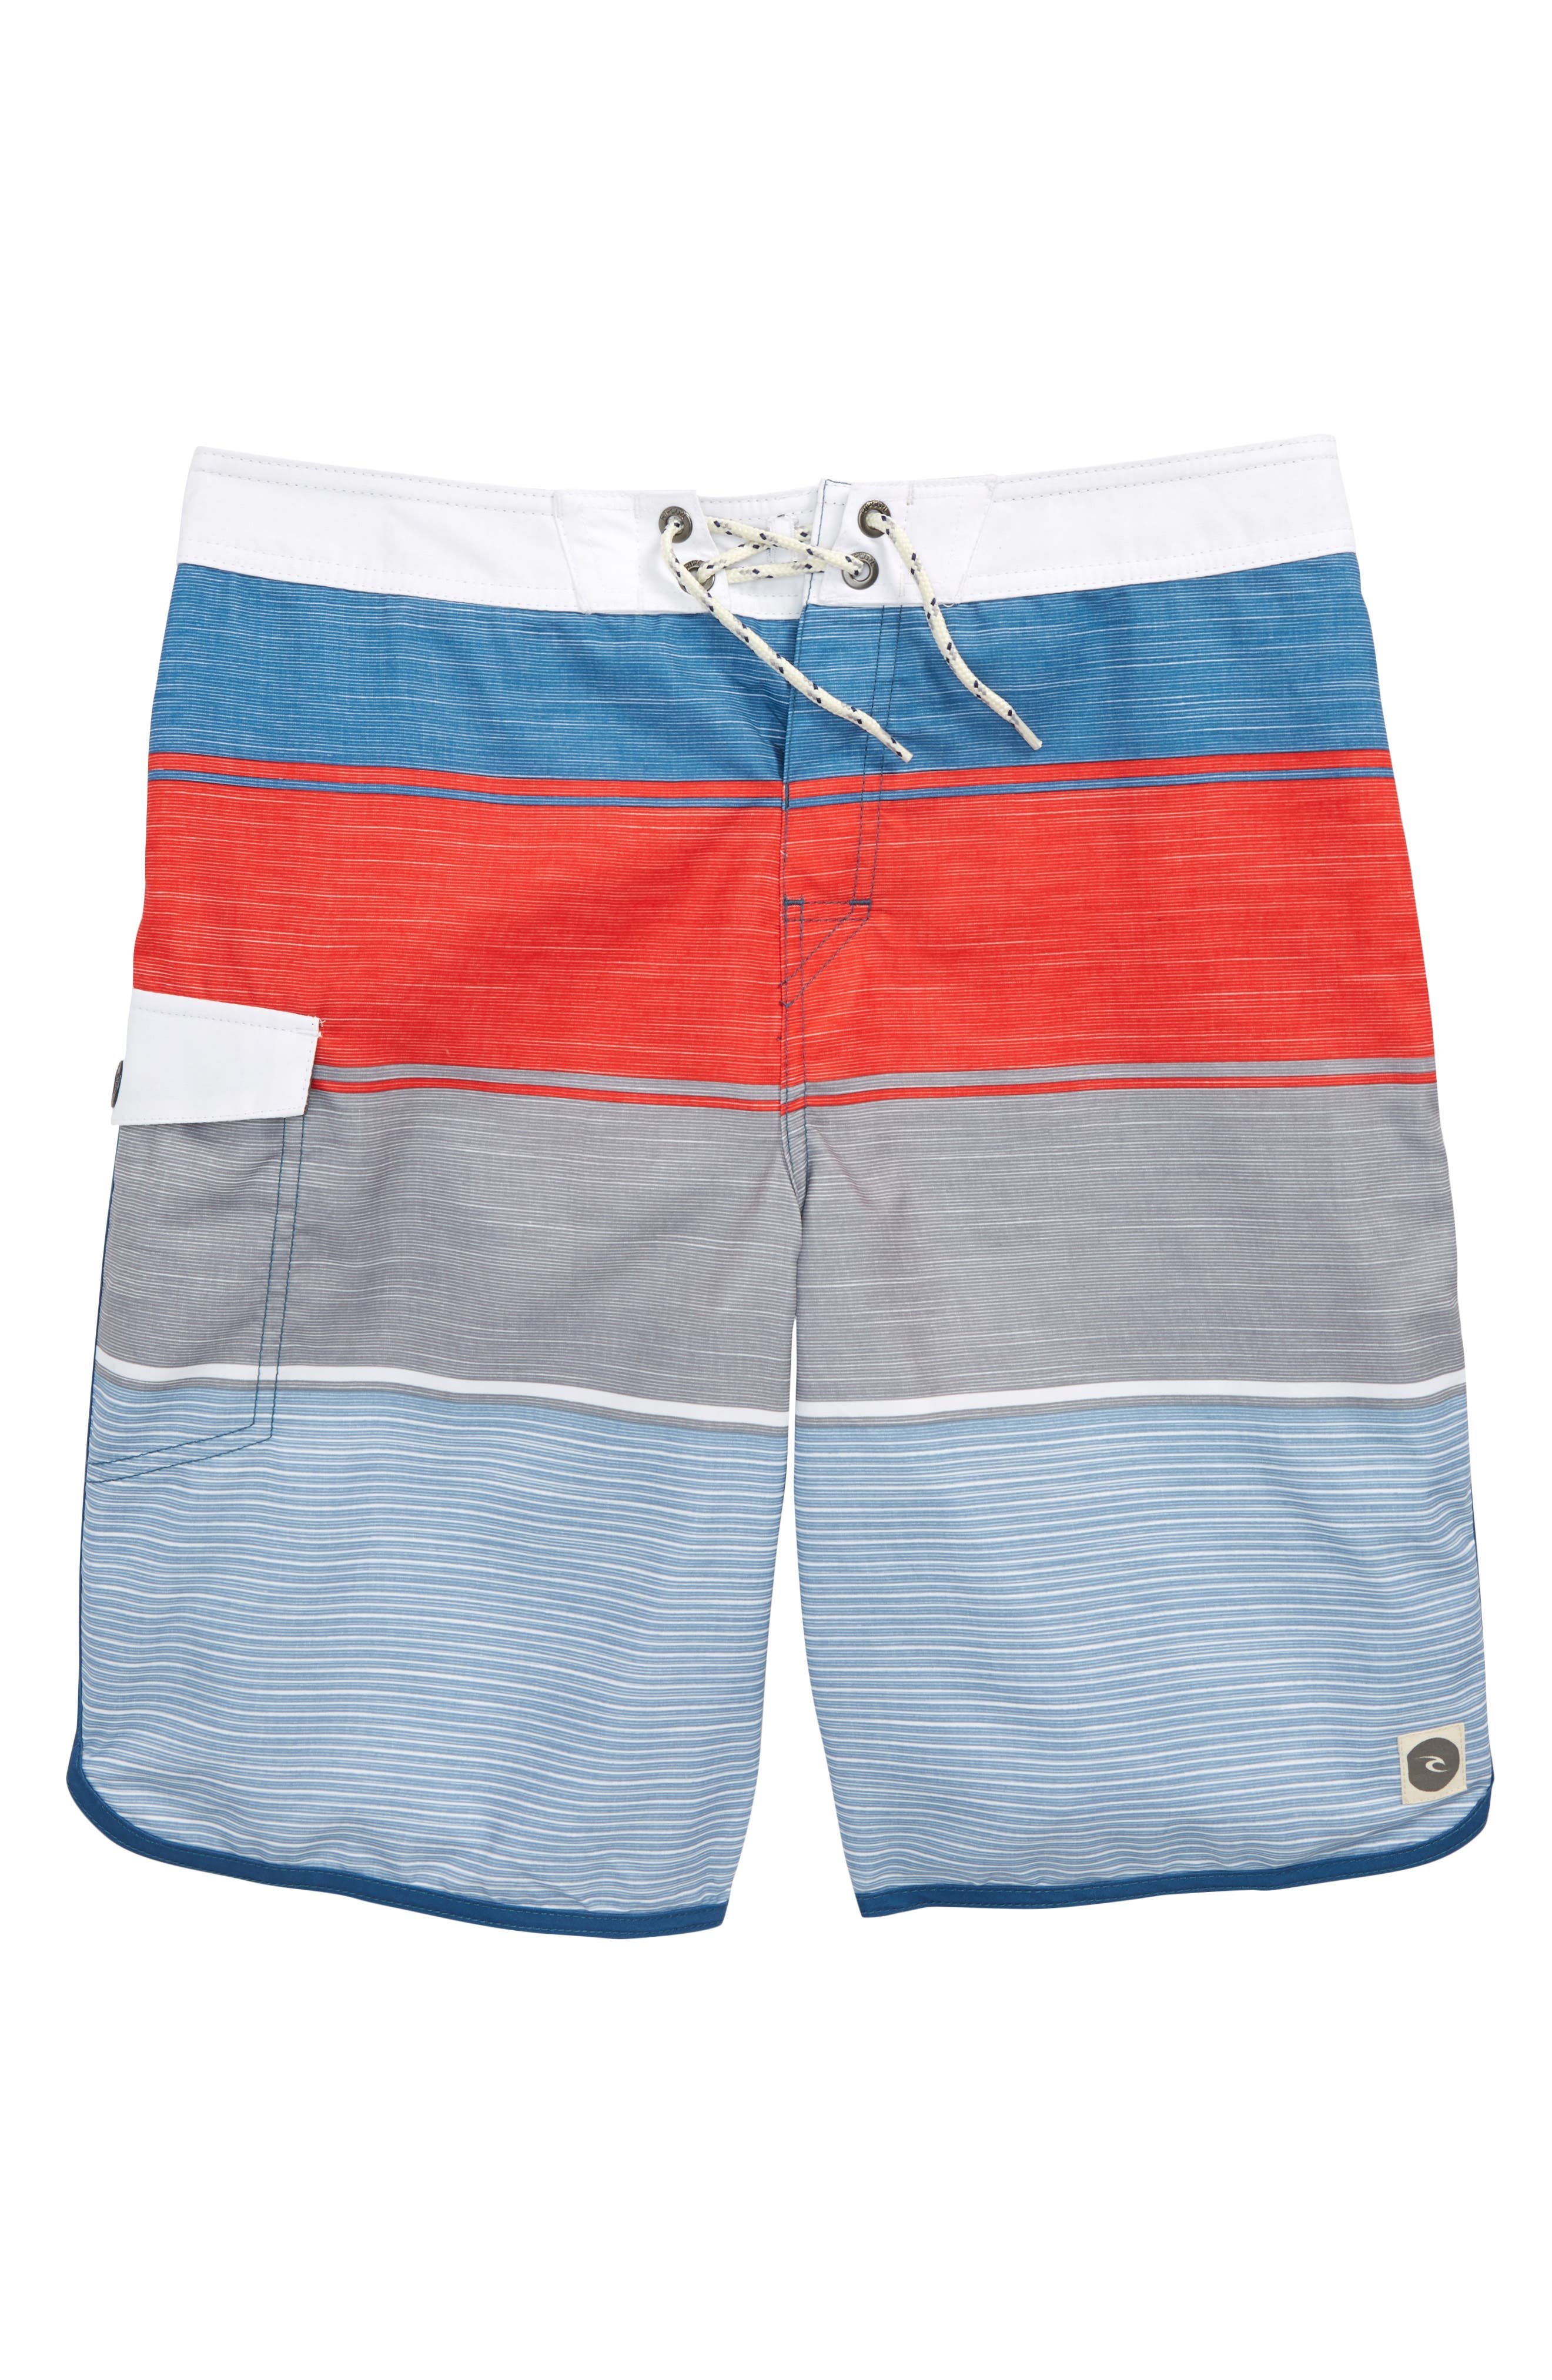 Good Times Board Shorts,                         Main,                         color, Red